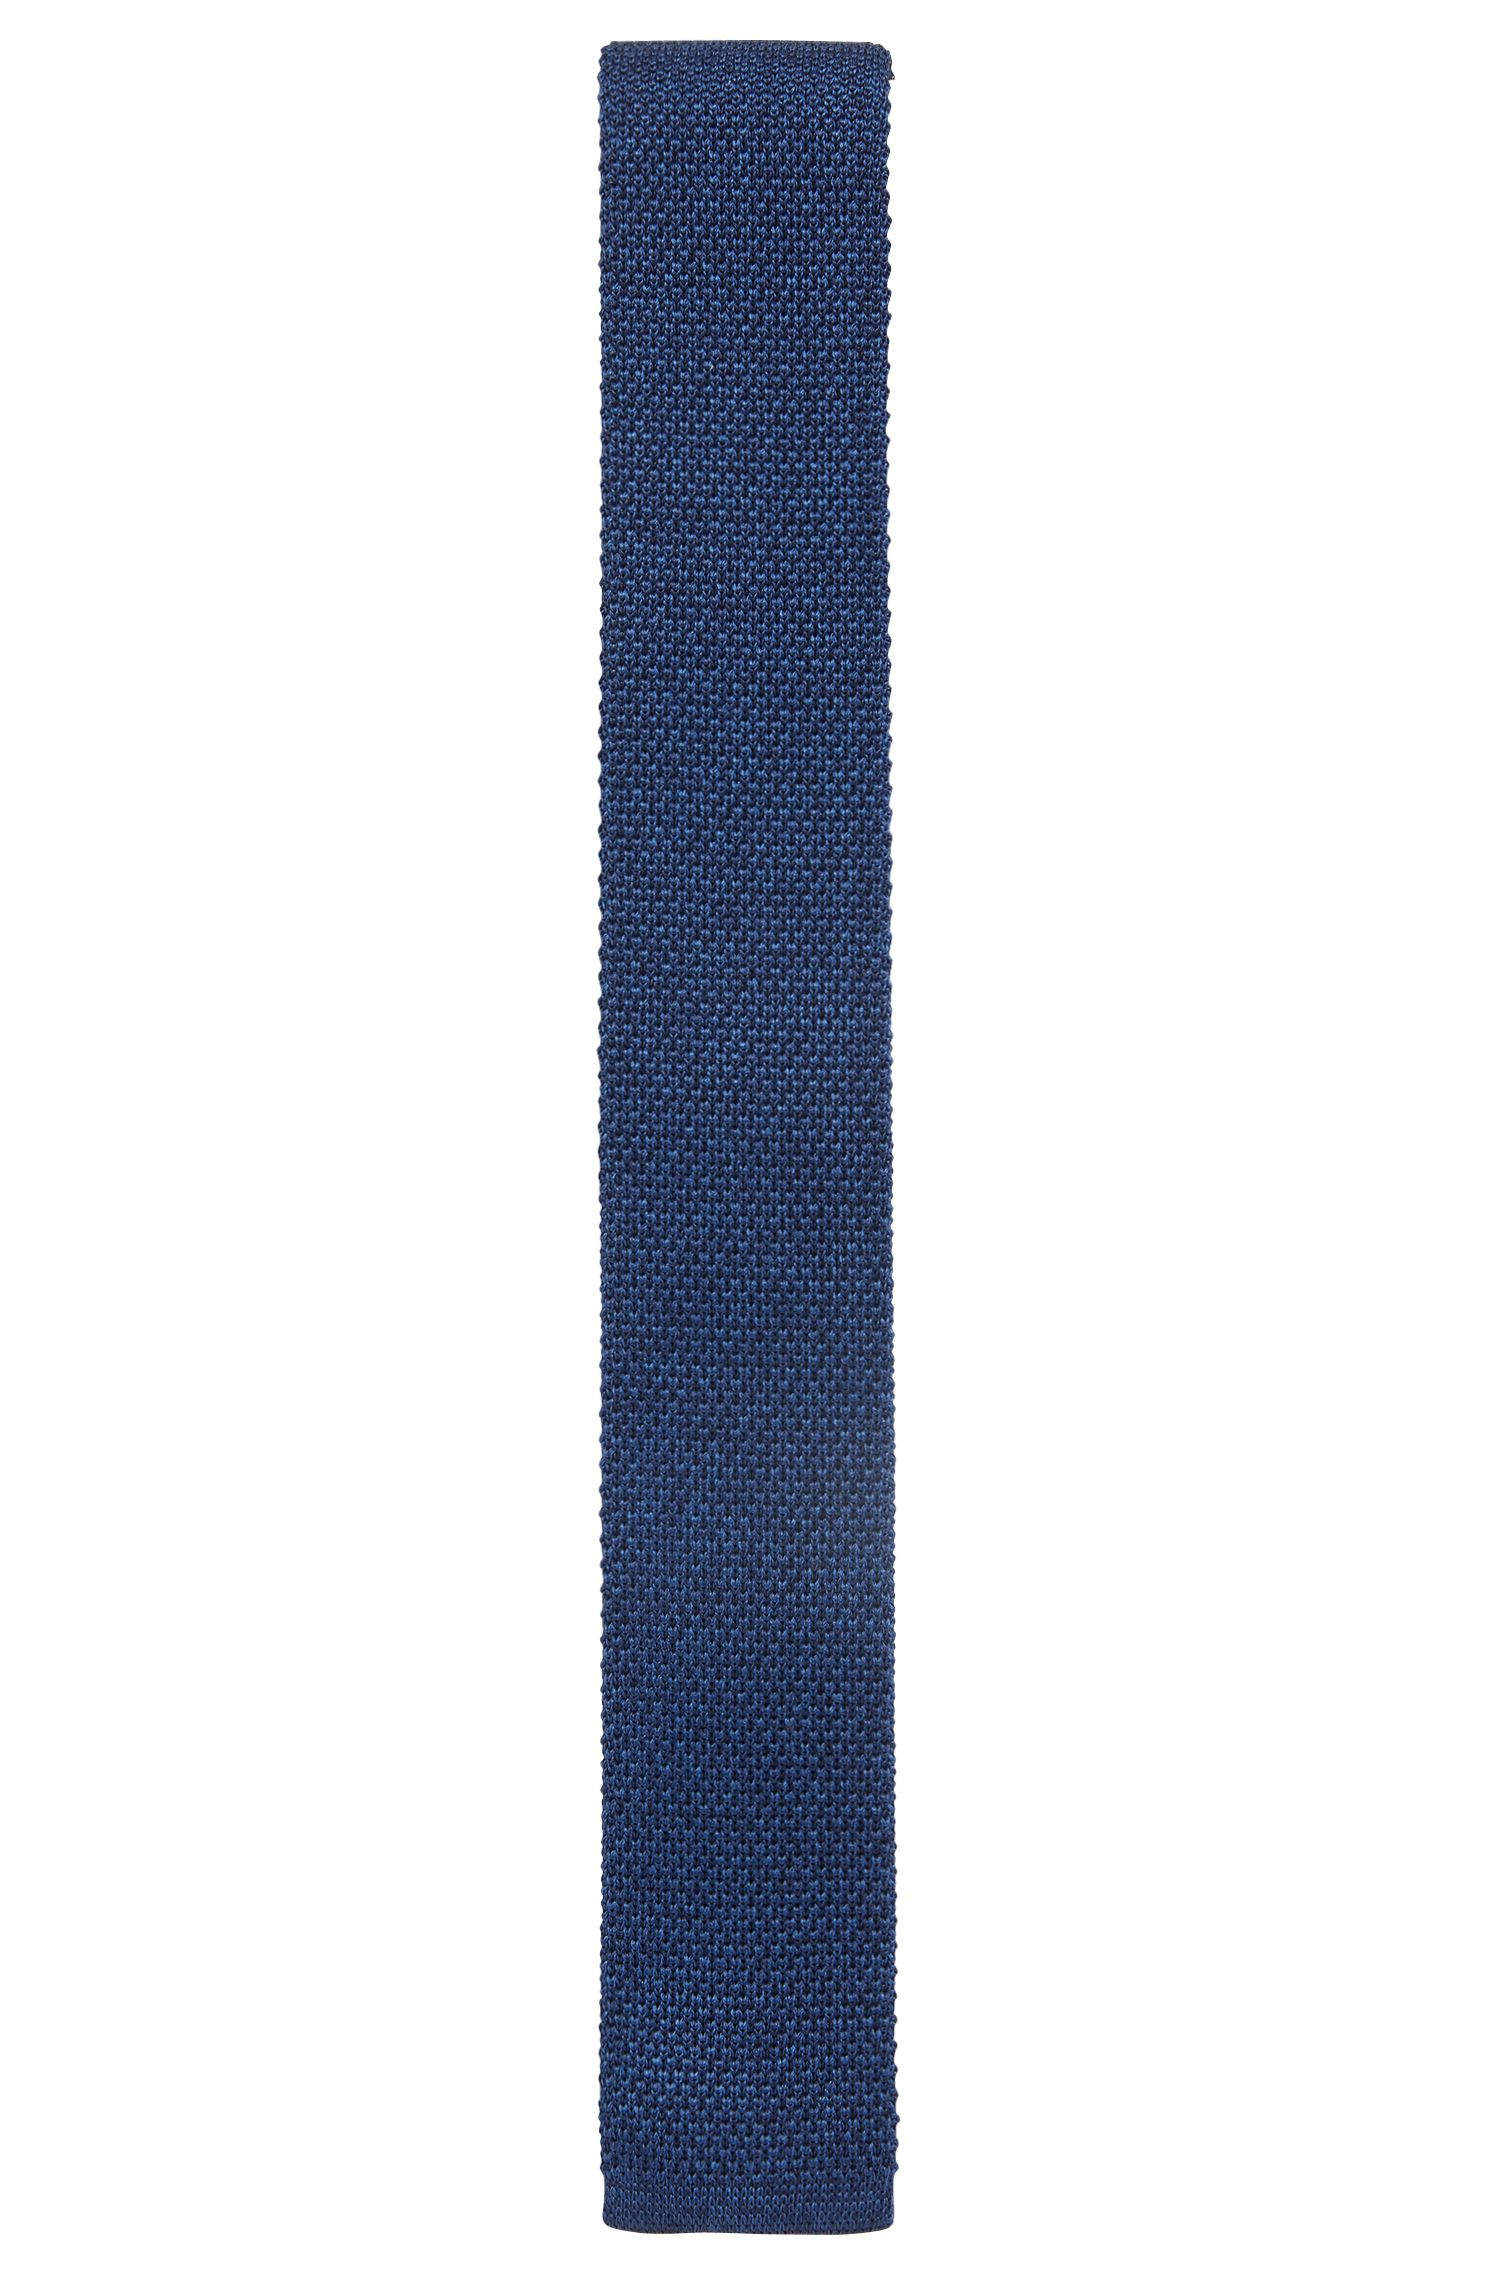 Italian-made straight-cut tie in knitted silk